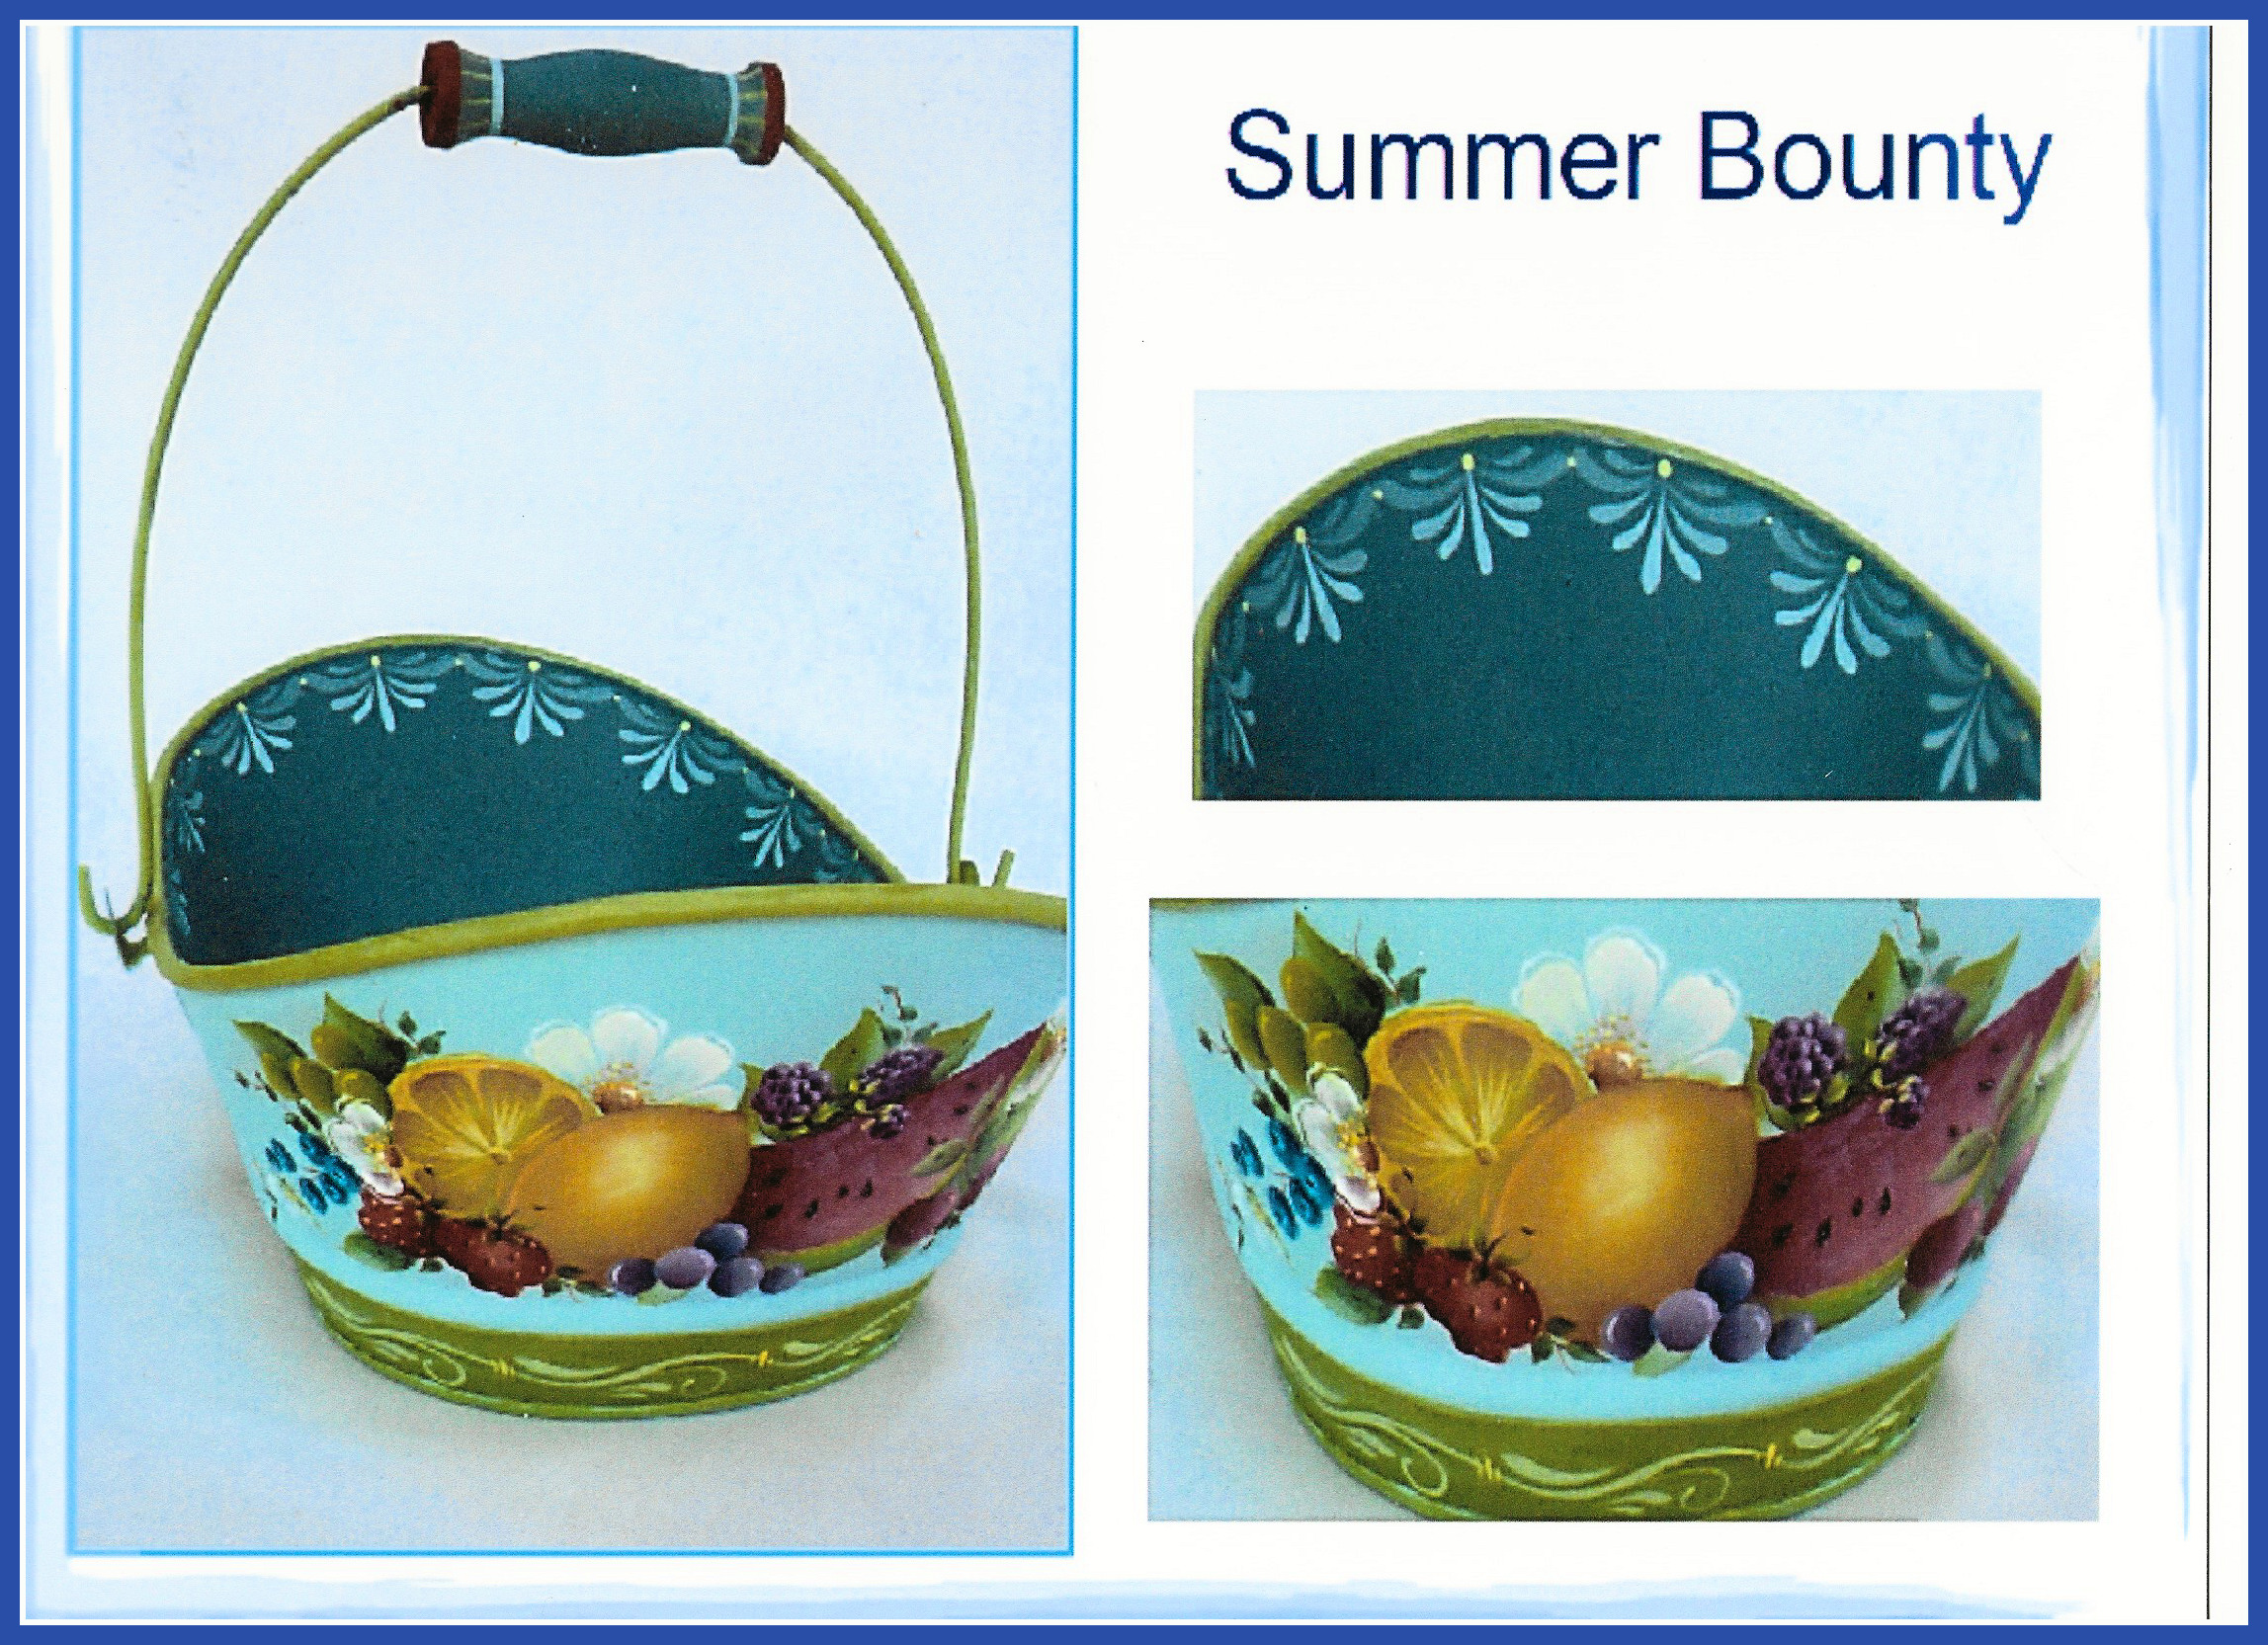 summer-bounty-collage-2.jpg